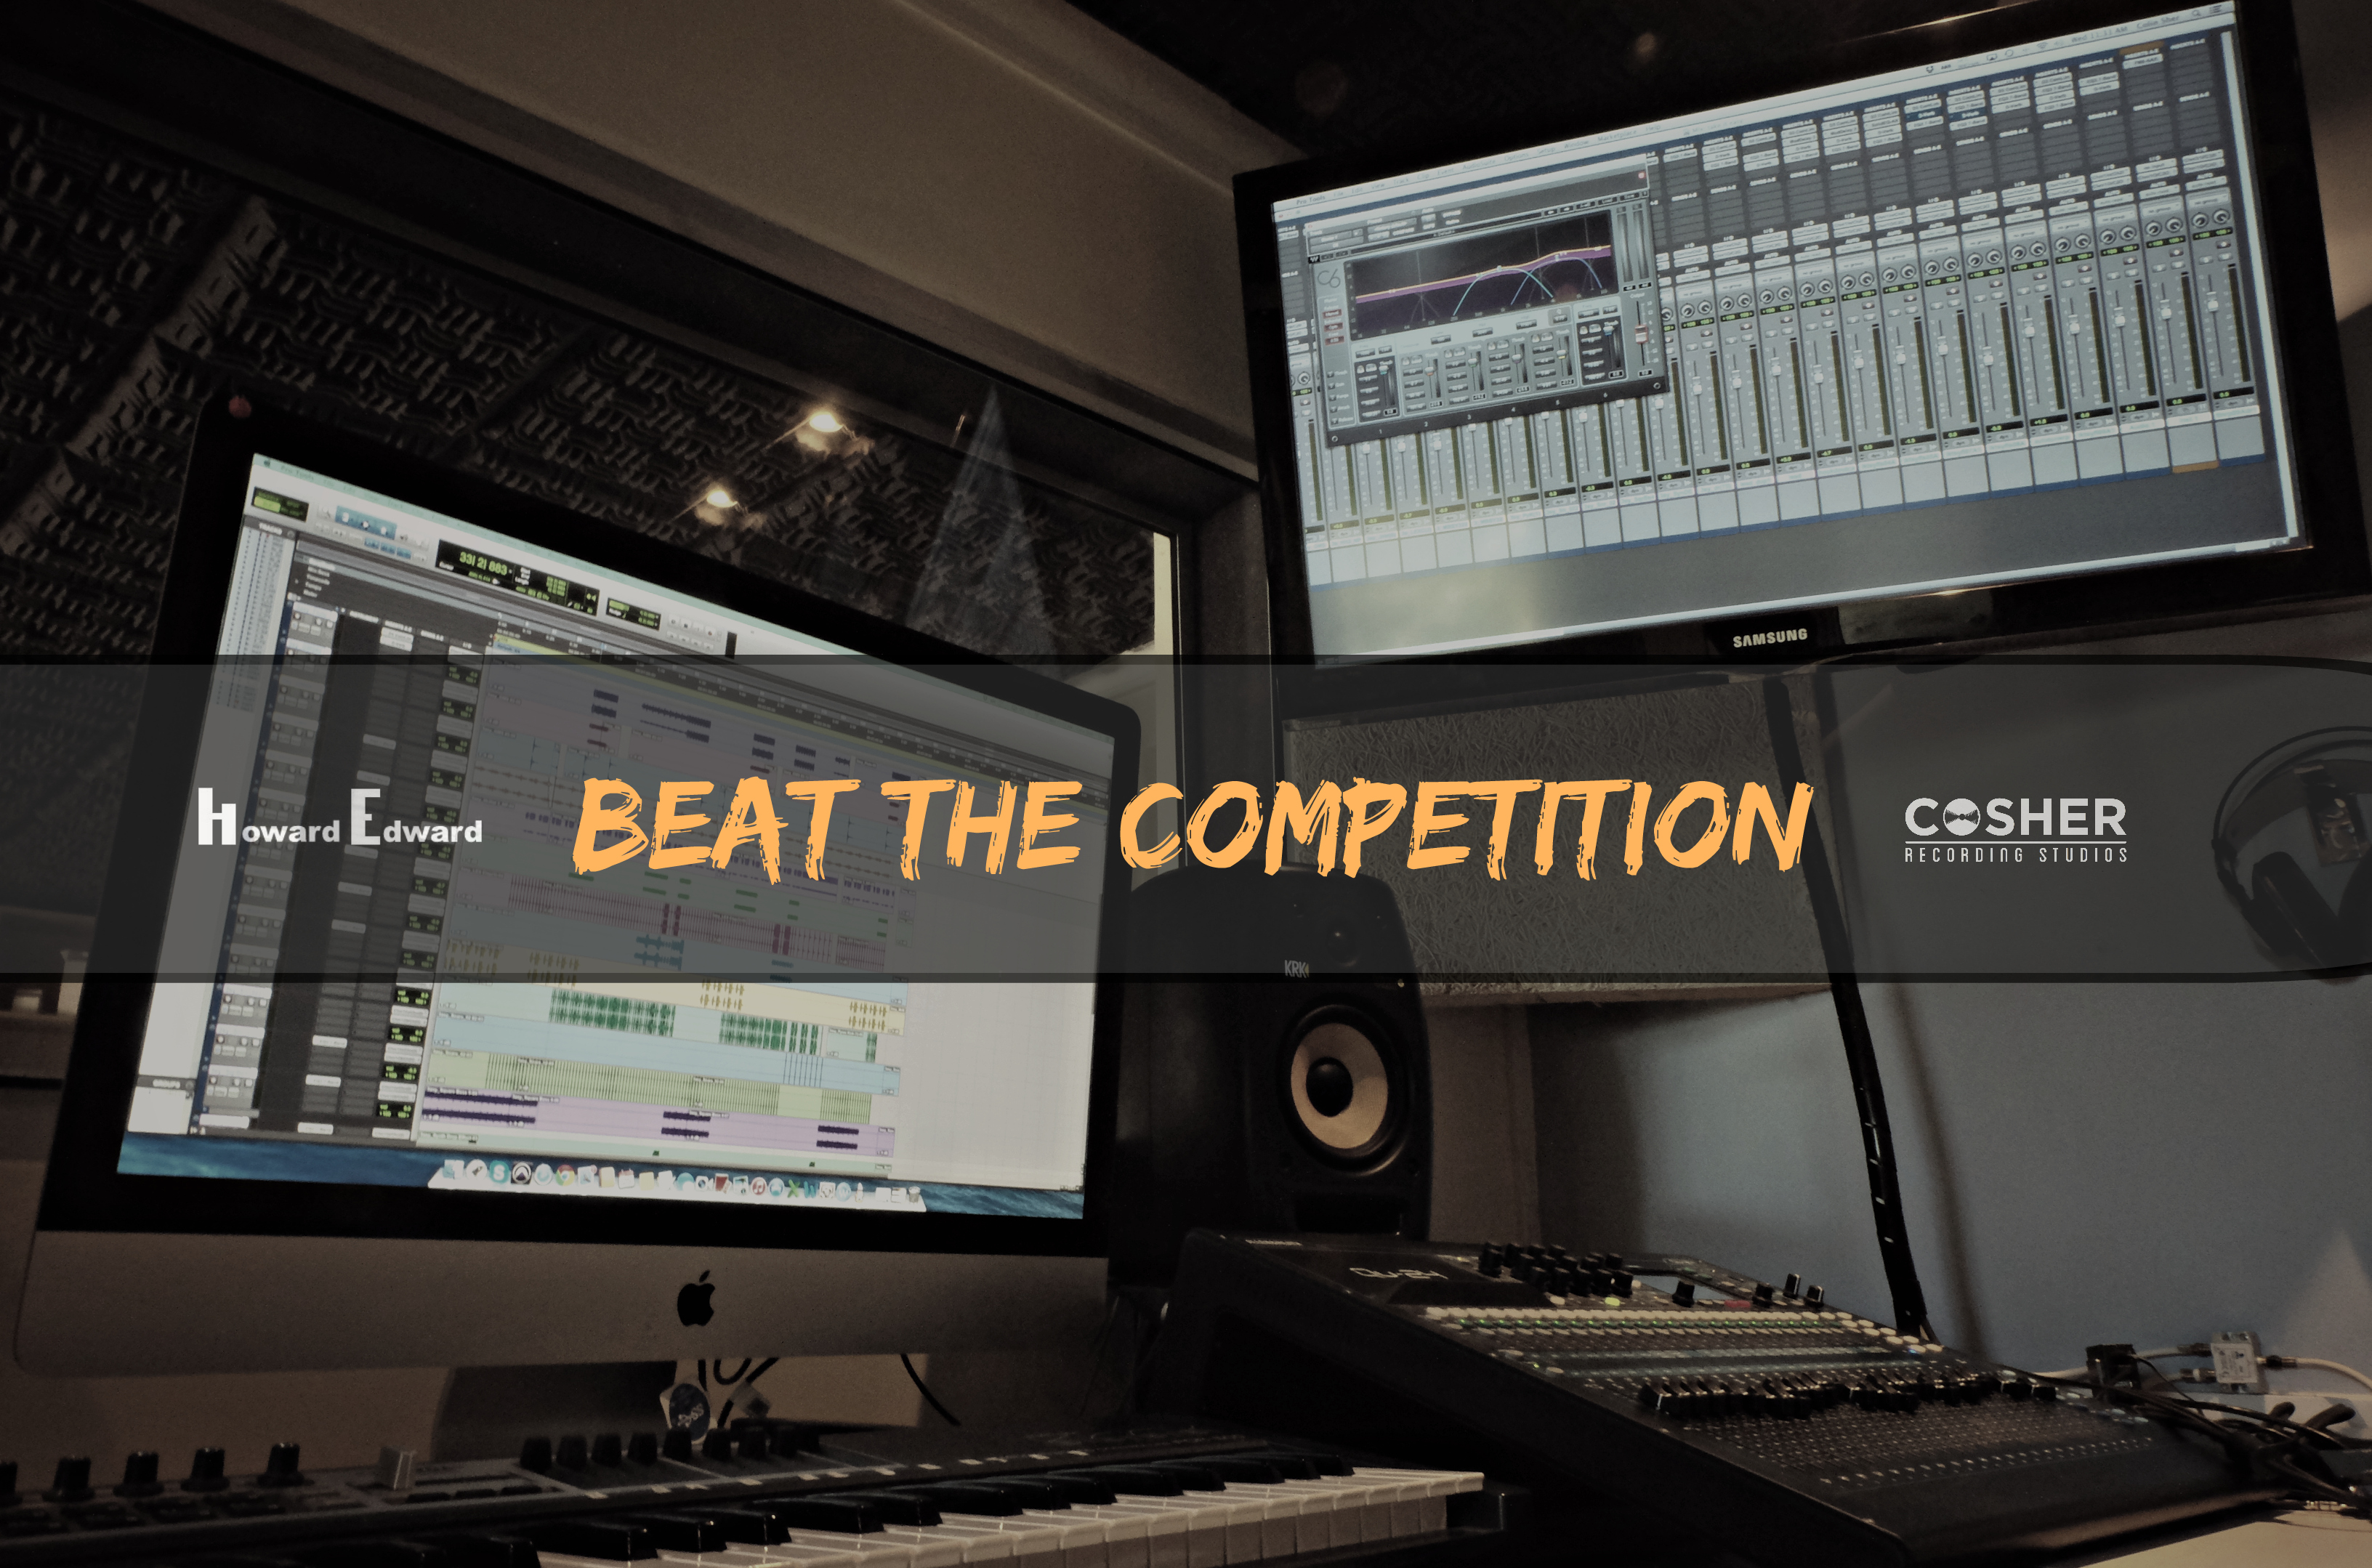 Beat the Competition